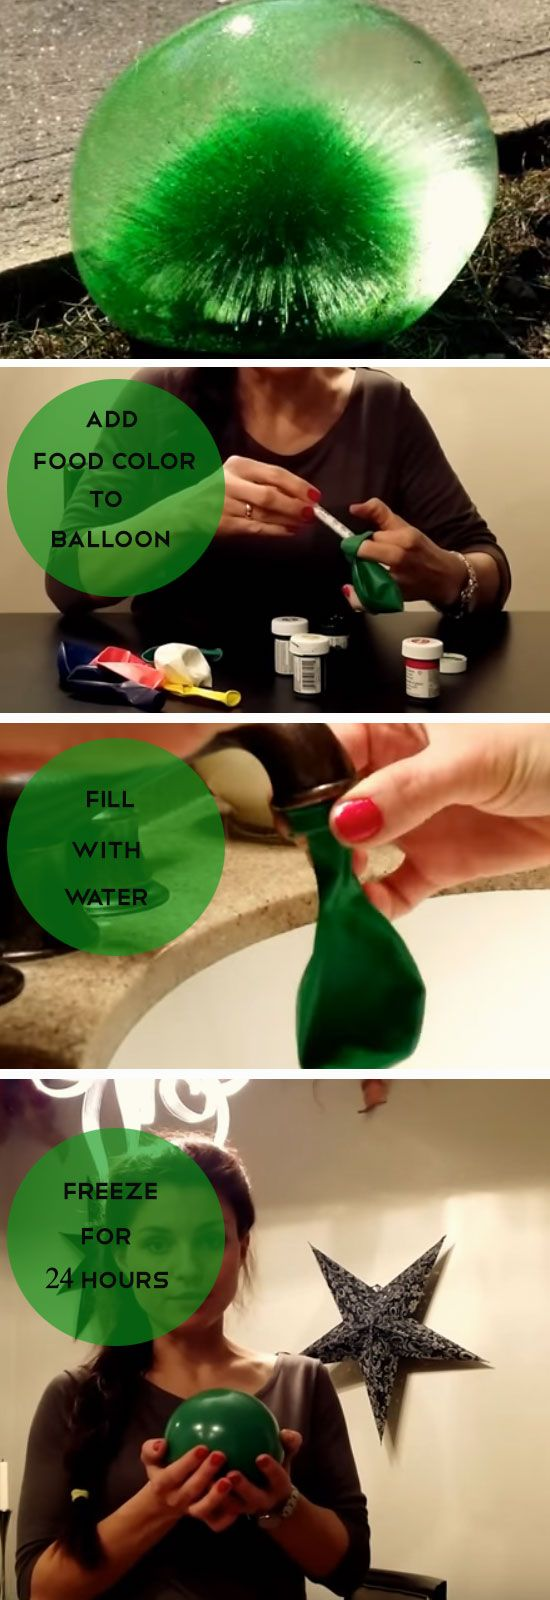 15+ Cool craft ideas to do at home ideas